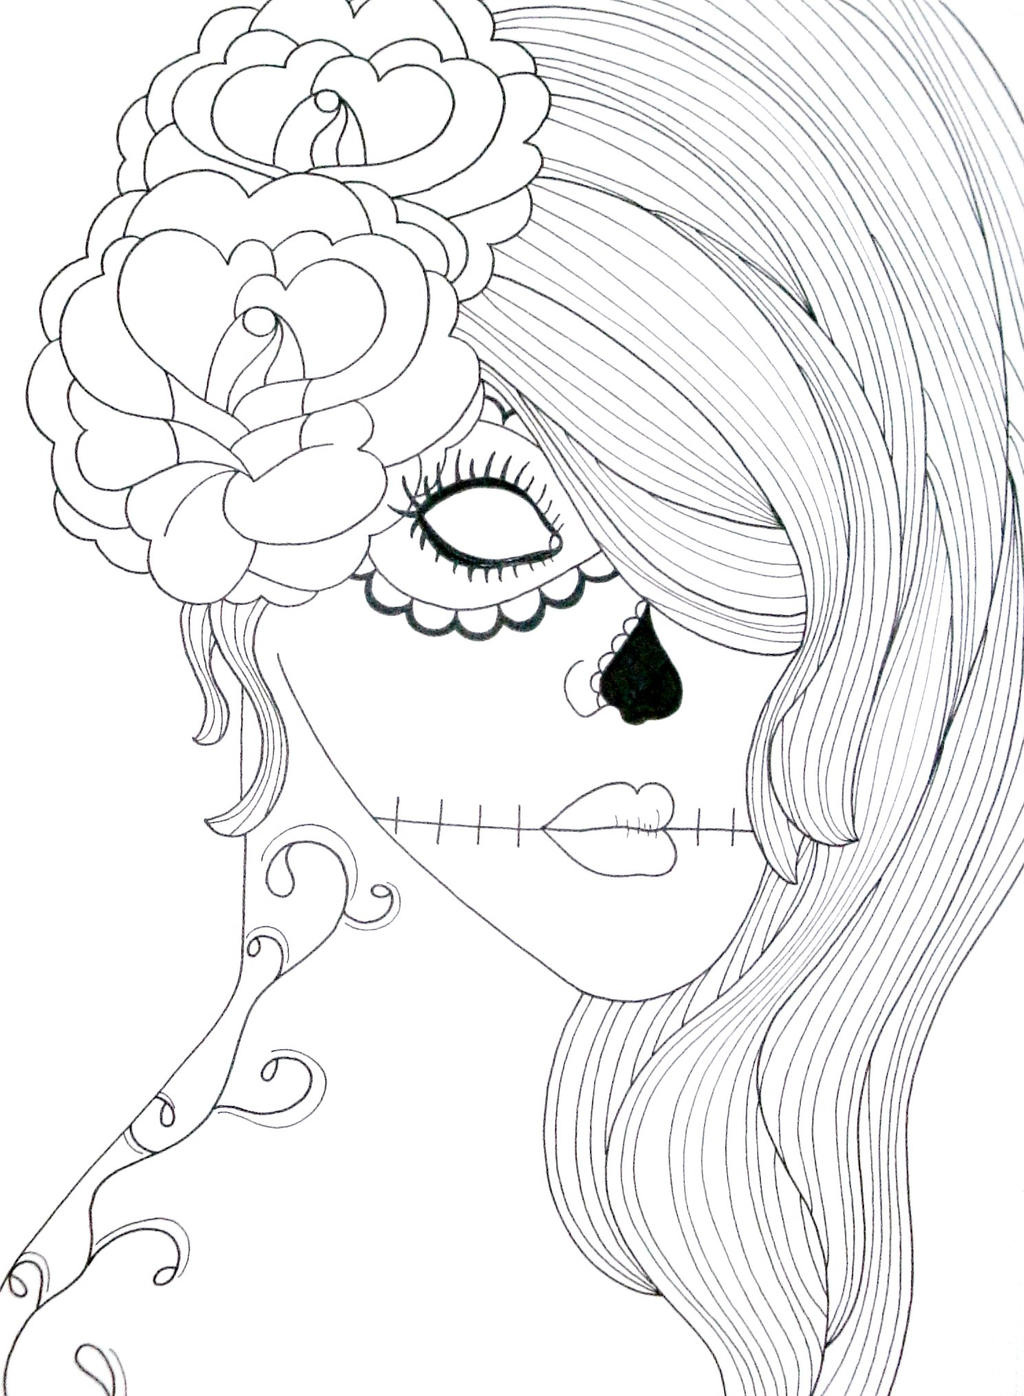 siins tumblr coloring pages - photo#20